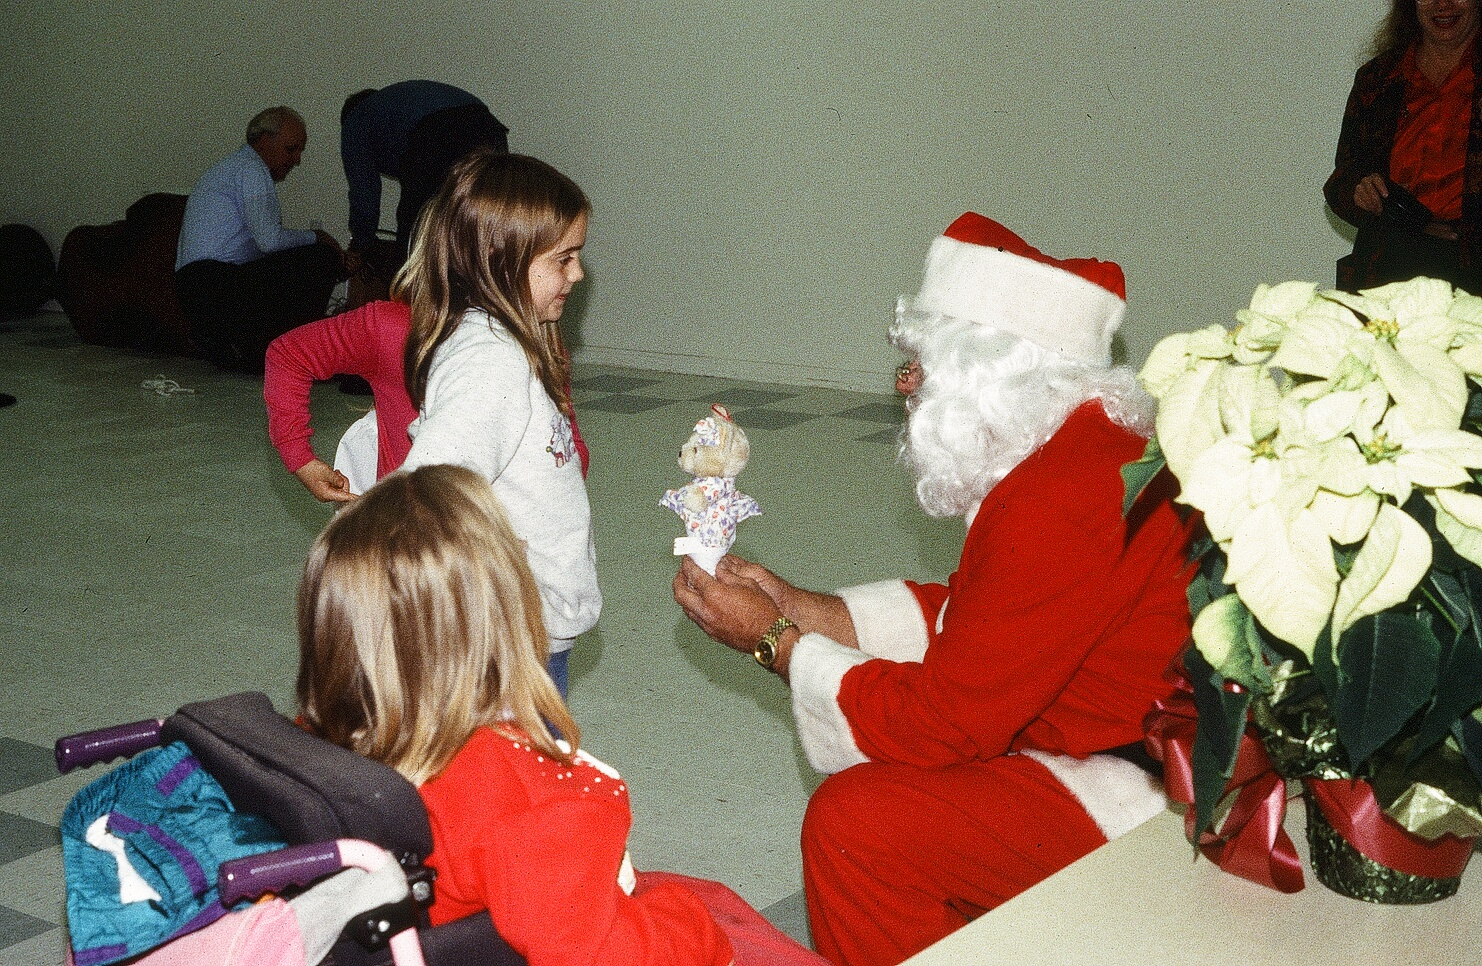 Santa reaches out to help